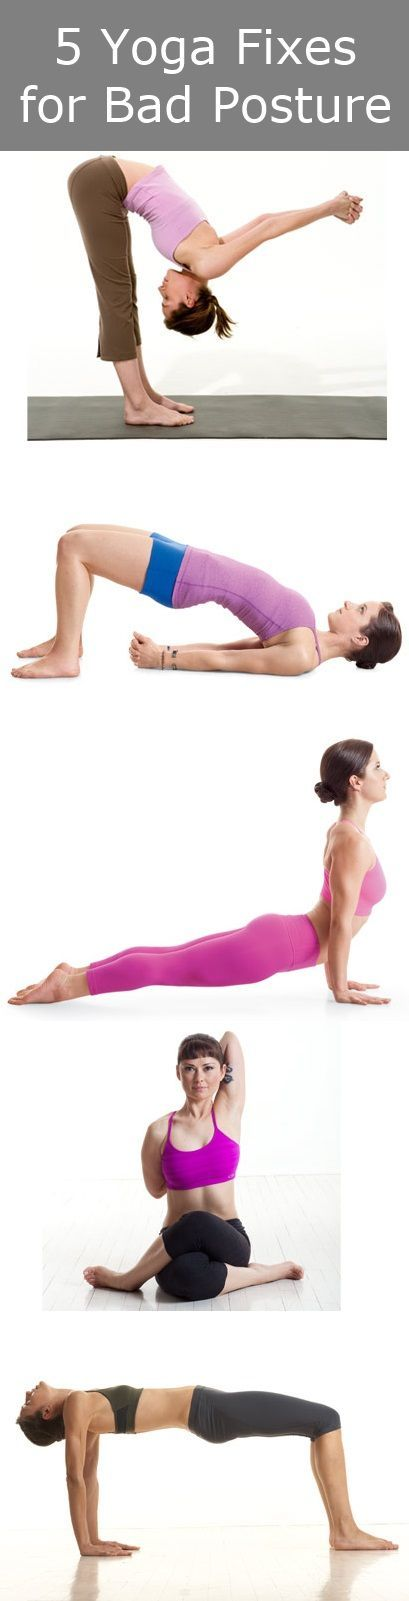 5 Easy Yoga Poses To Fix Your Bad Posture